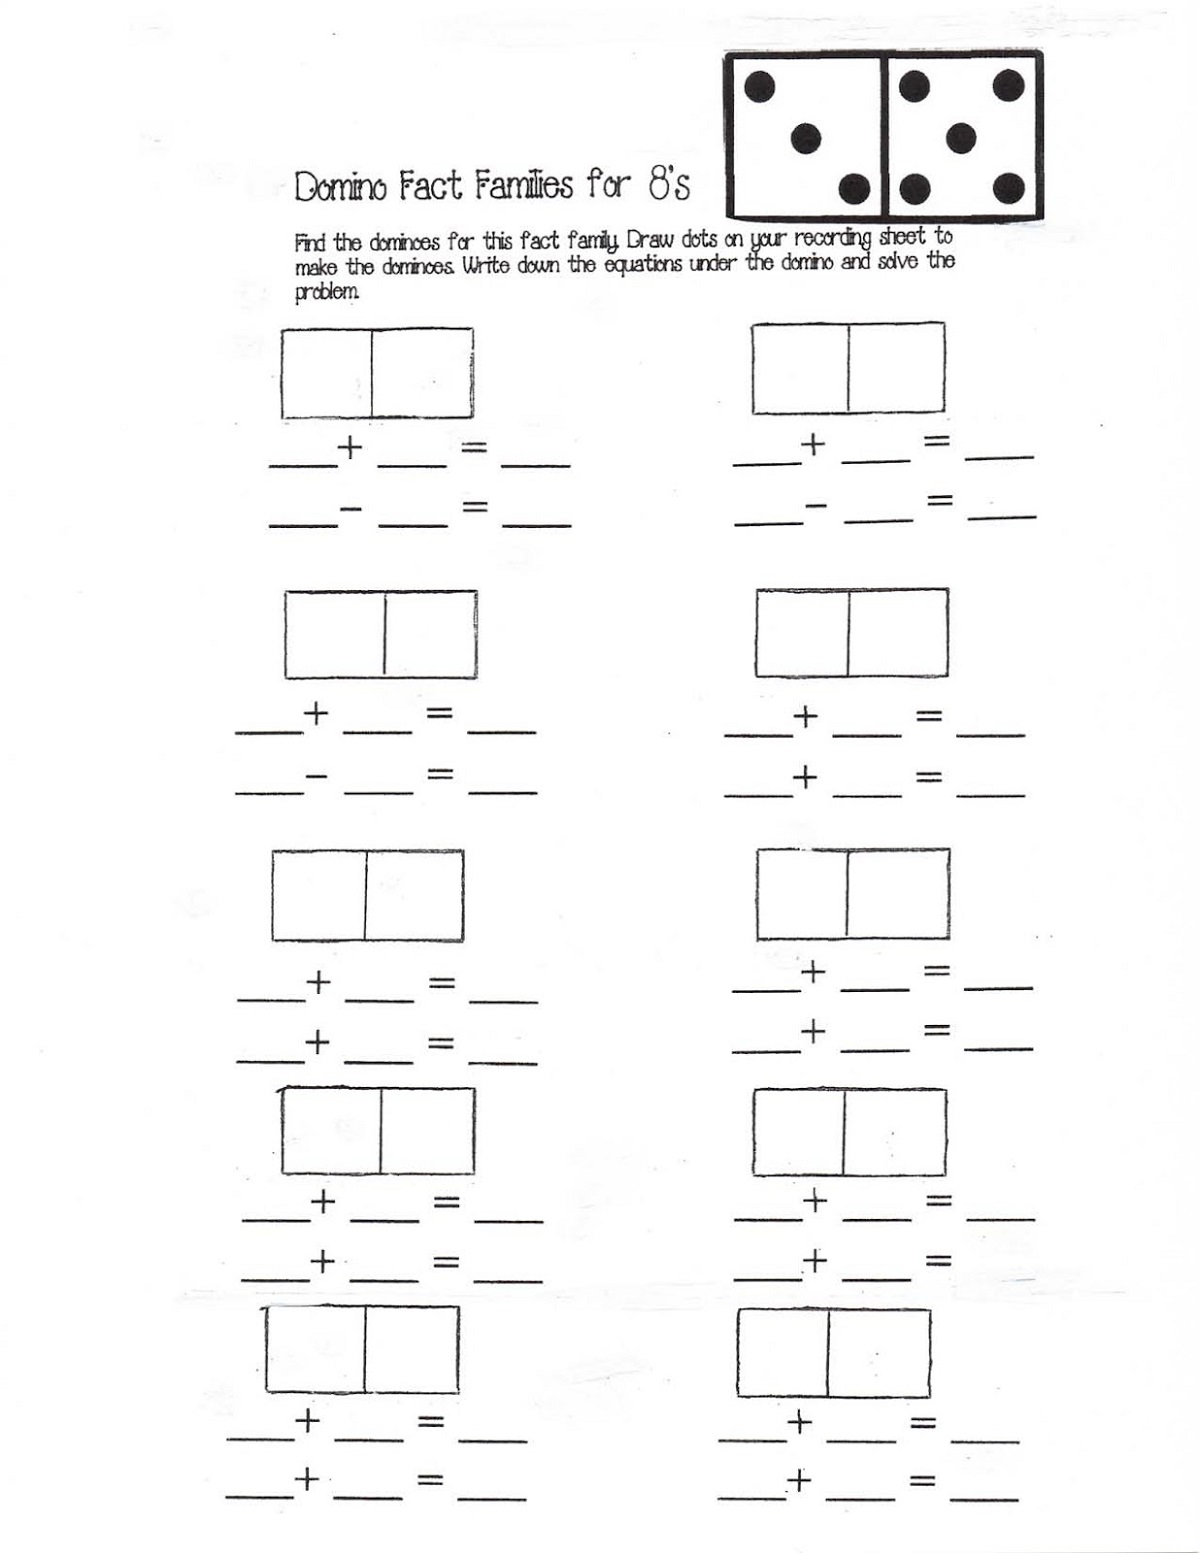 fact family worksheet domino